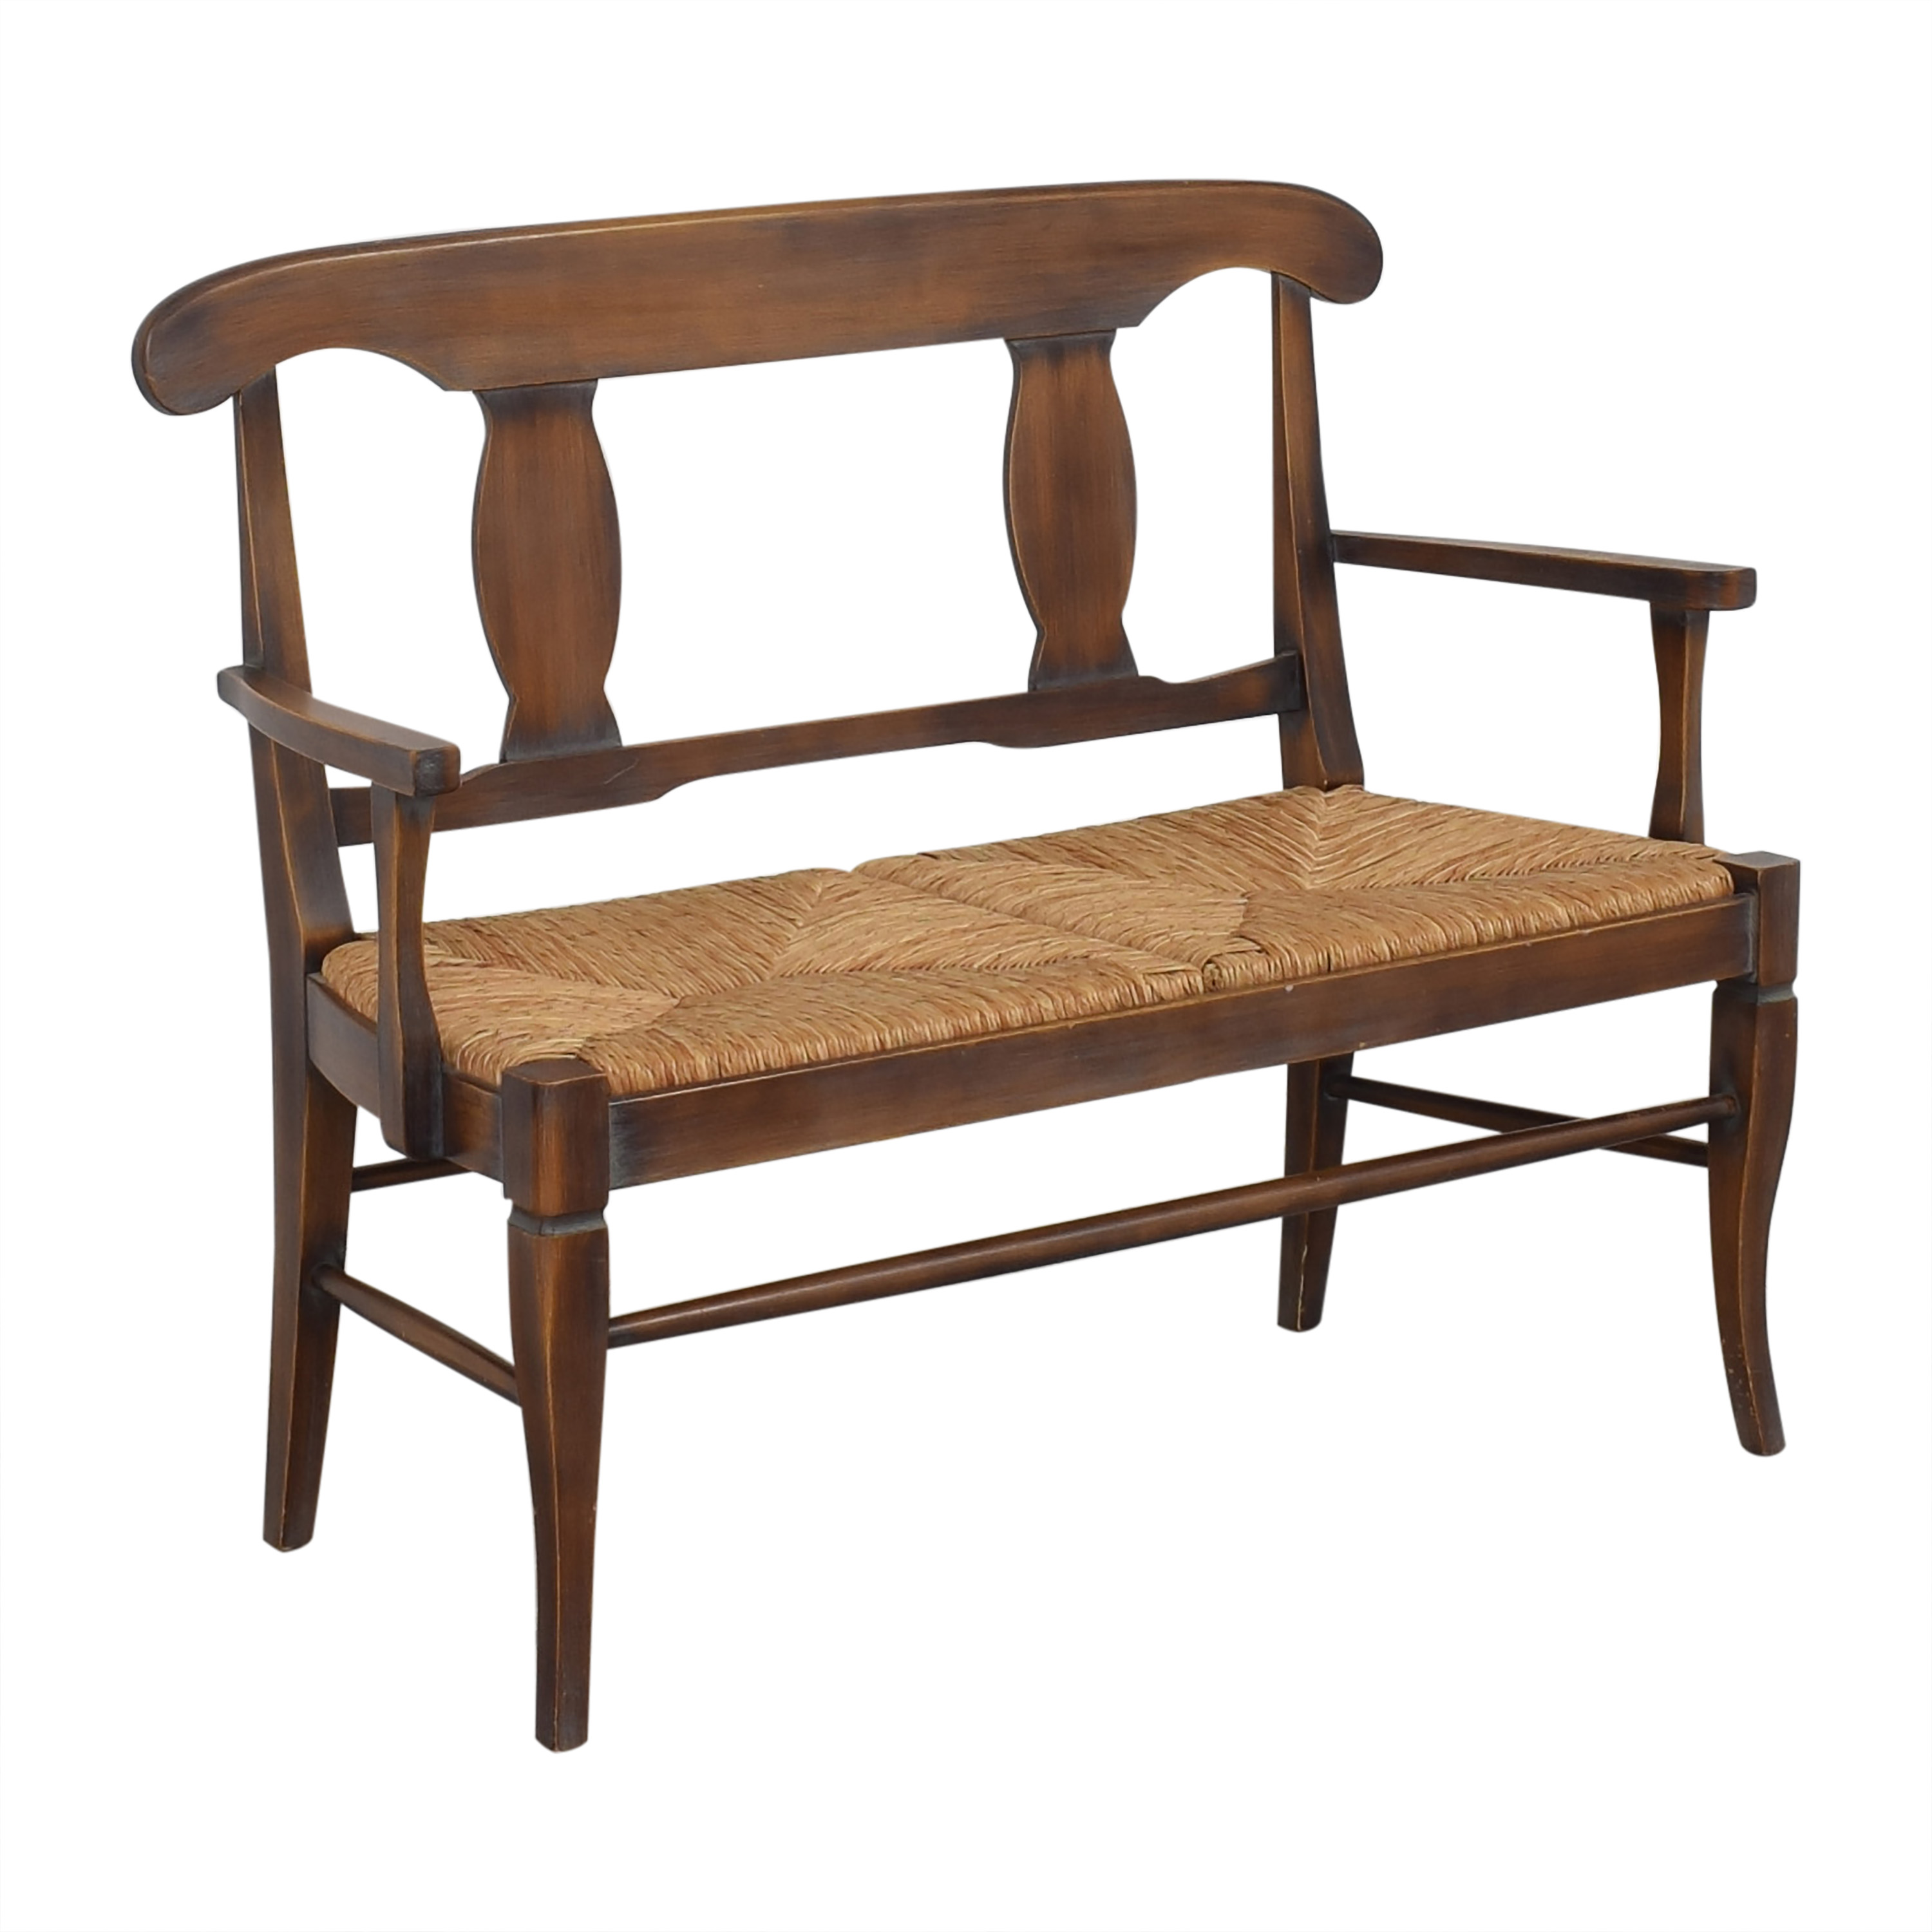 Crate & Barrel Crate & Barrel Rush Seat Bench Benches